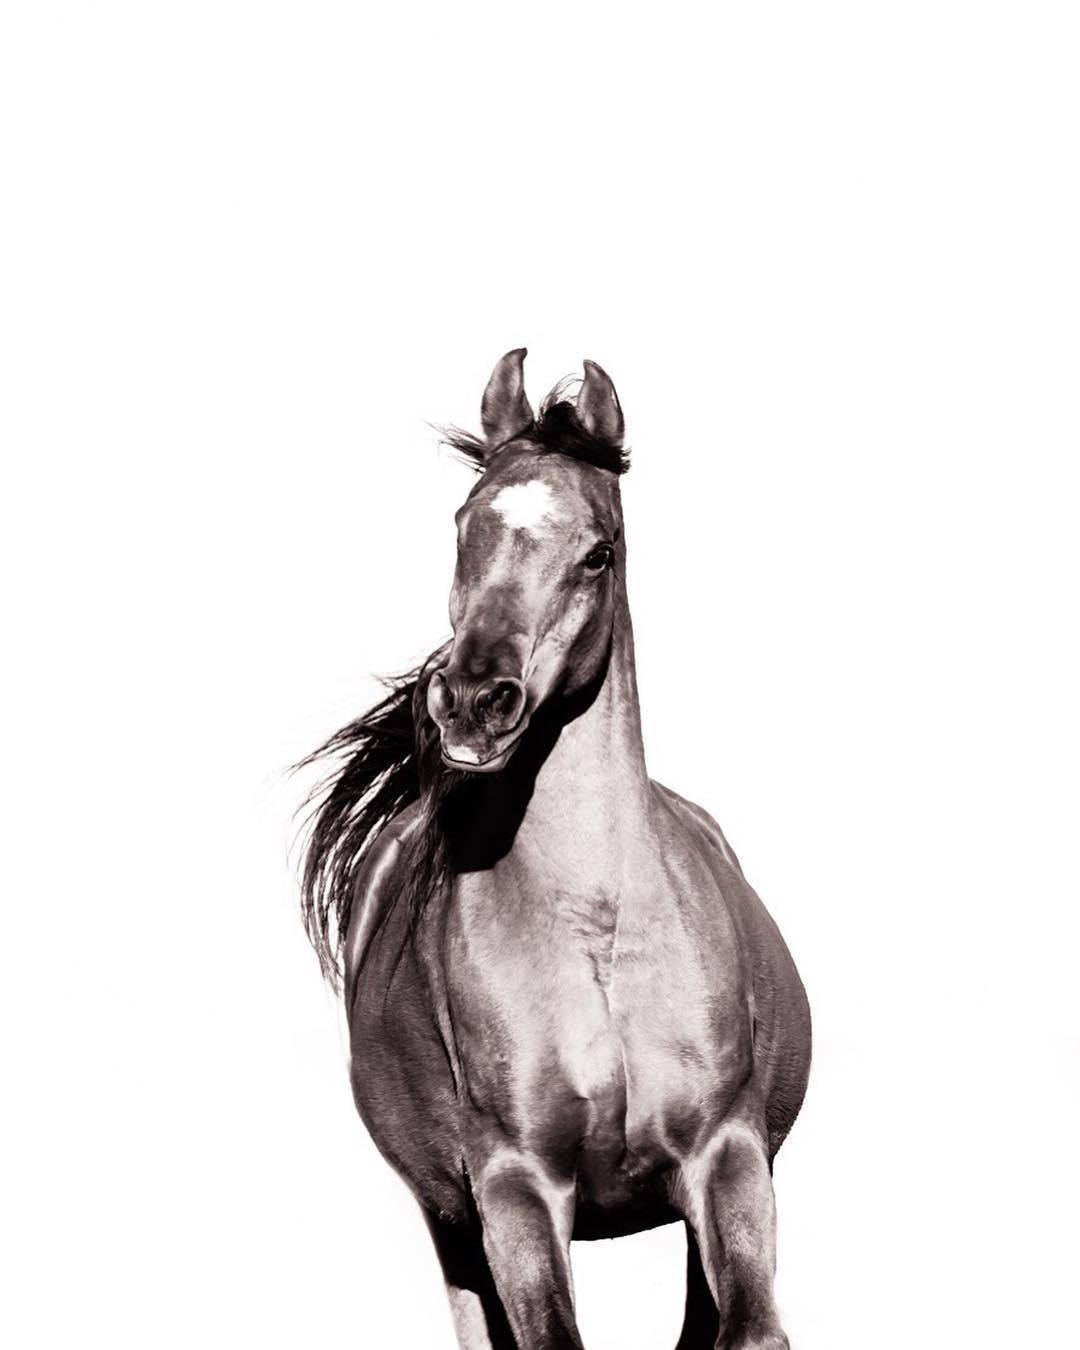 Pin by Natalie on Horses | Pinterest | Horse, Baby horses and Equine ...